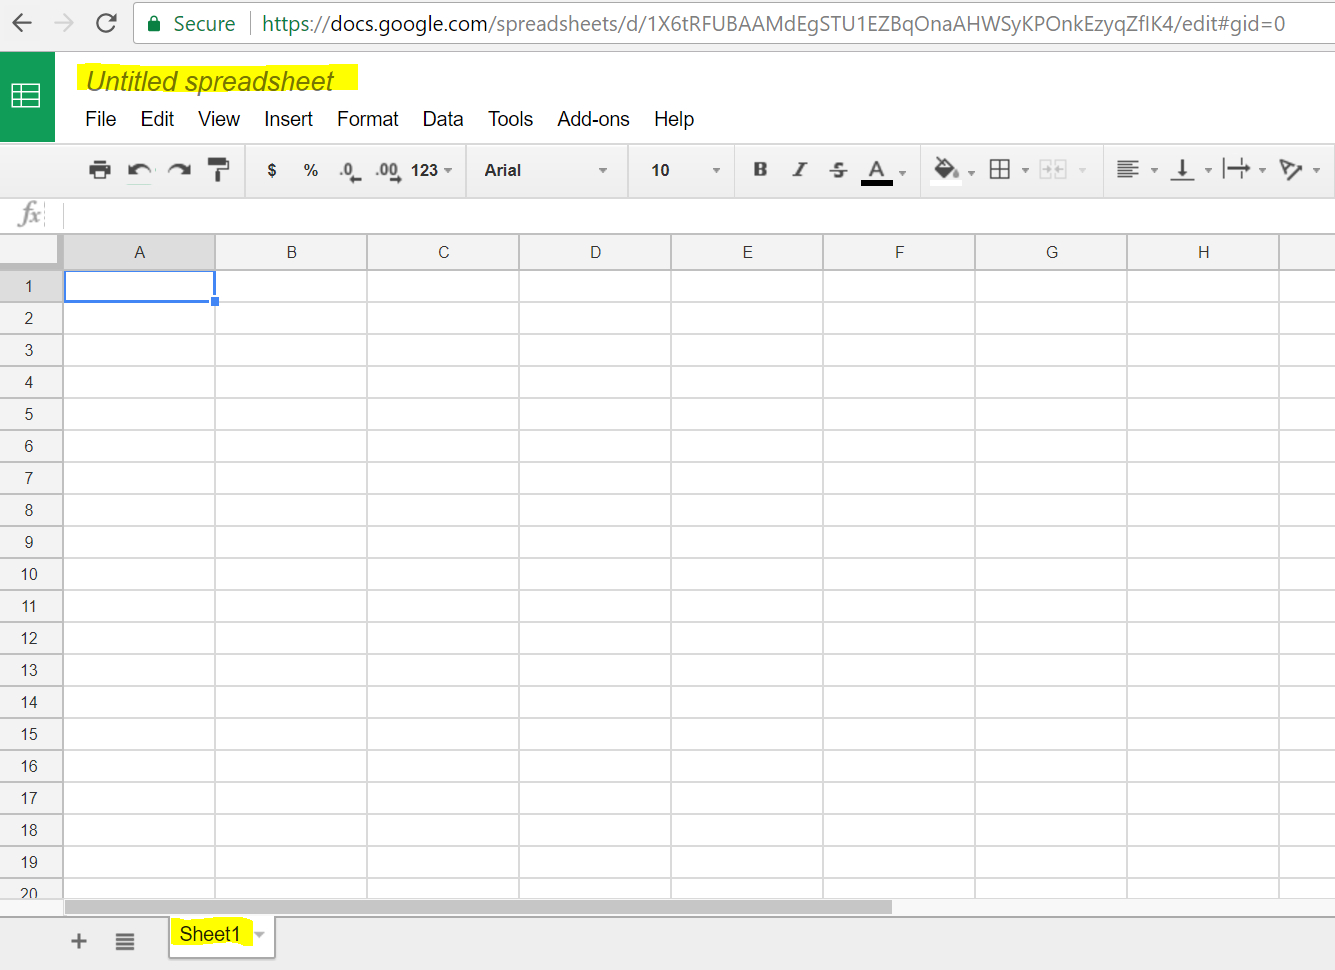 Google Spreadsheet Api Python With Monitor And Collect Your House Price Data Using Zillow's Api — Steemit